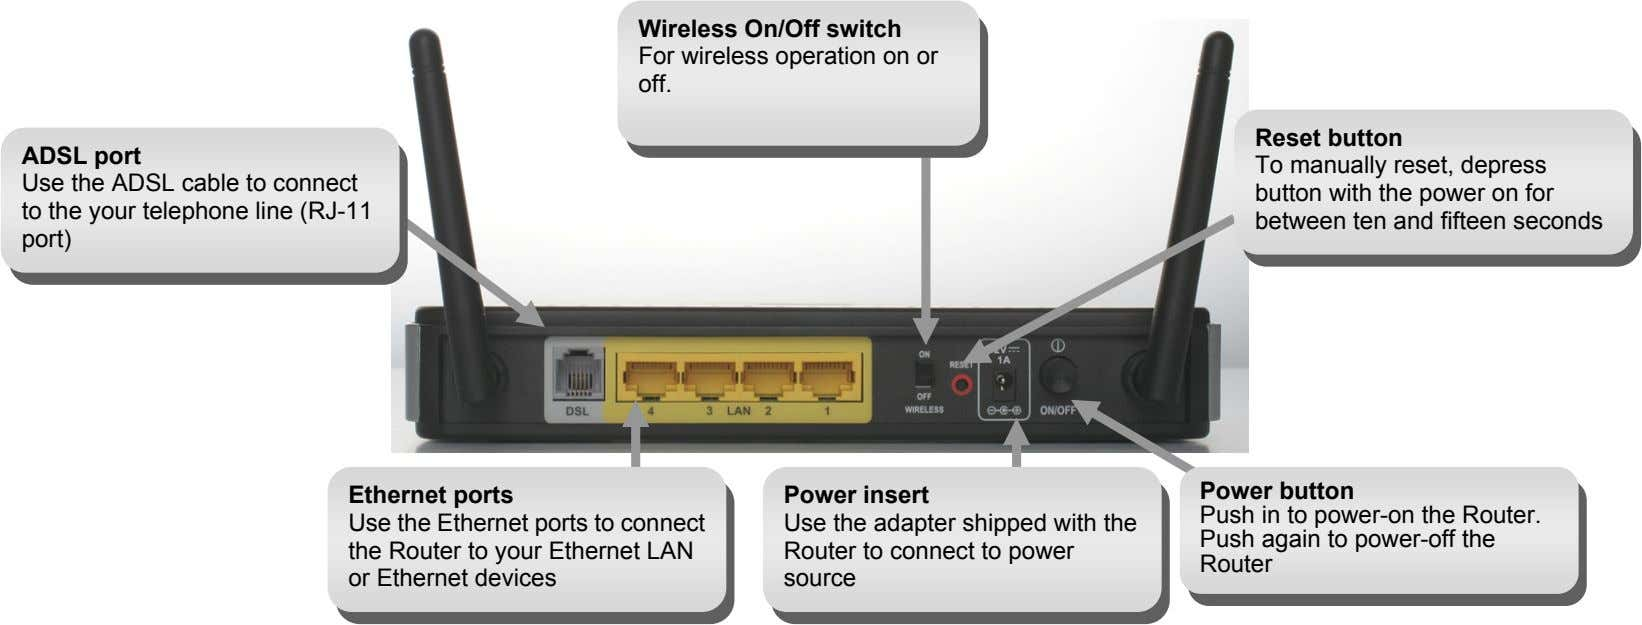 Wireless On/Off switch For wireless operation on or off. ADSL port Use the ADSL cable